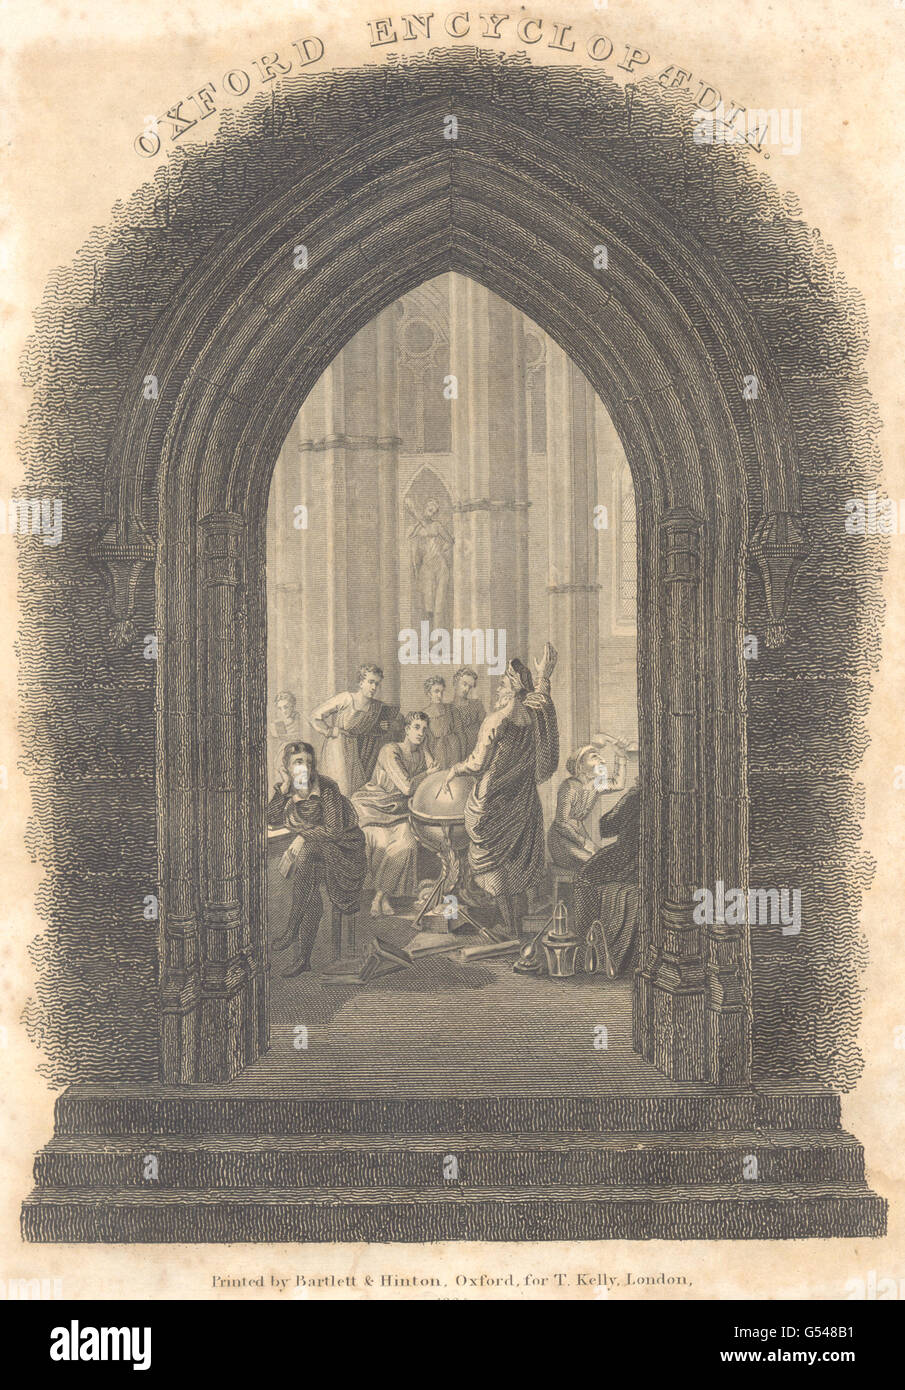 CHURCHES: Oxford Encyclopedia frontispiece, antique print 1830 - Stock Image